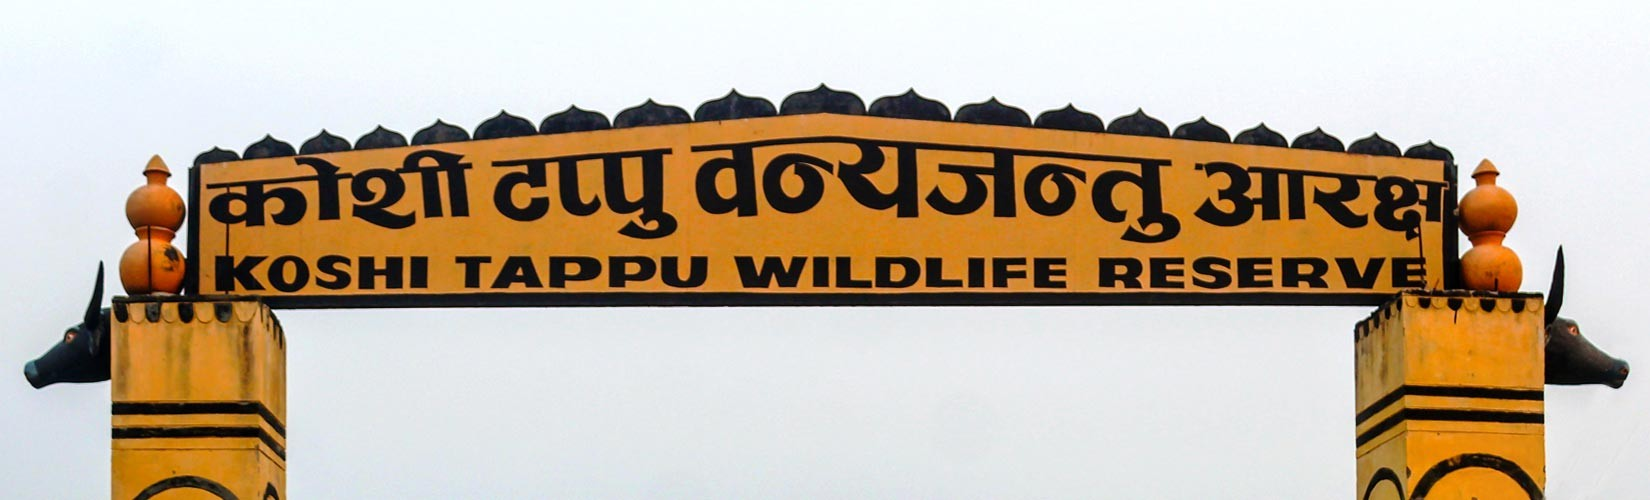 Koshi Tappu Wildlife Reserve Rules and Regulation